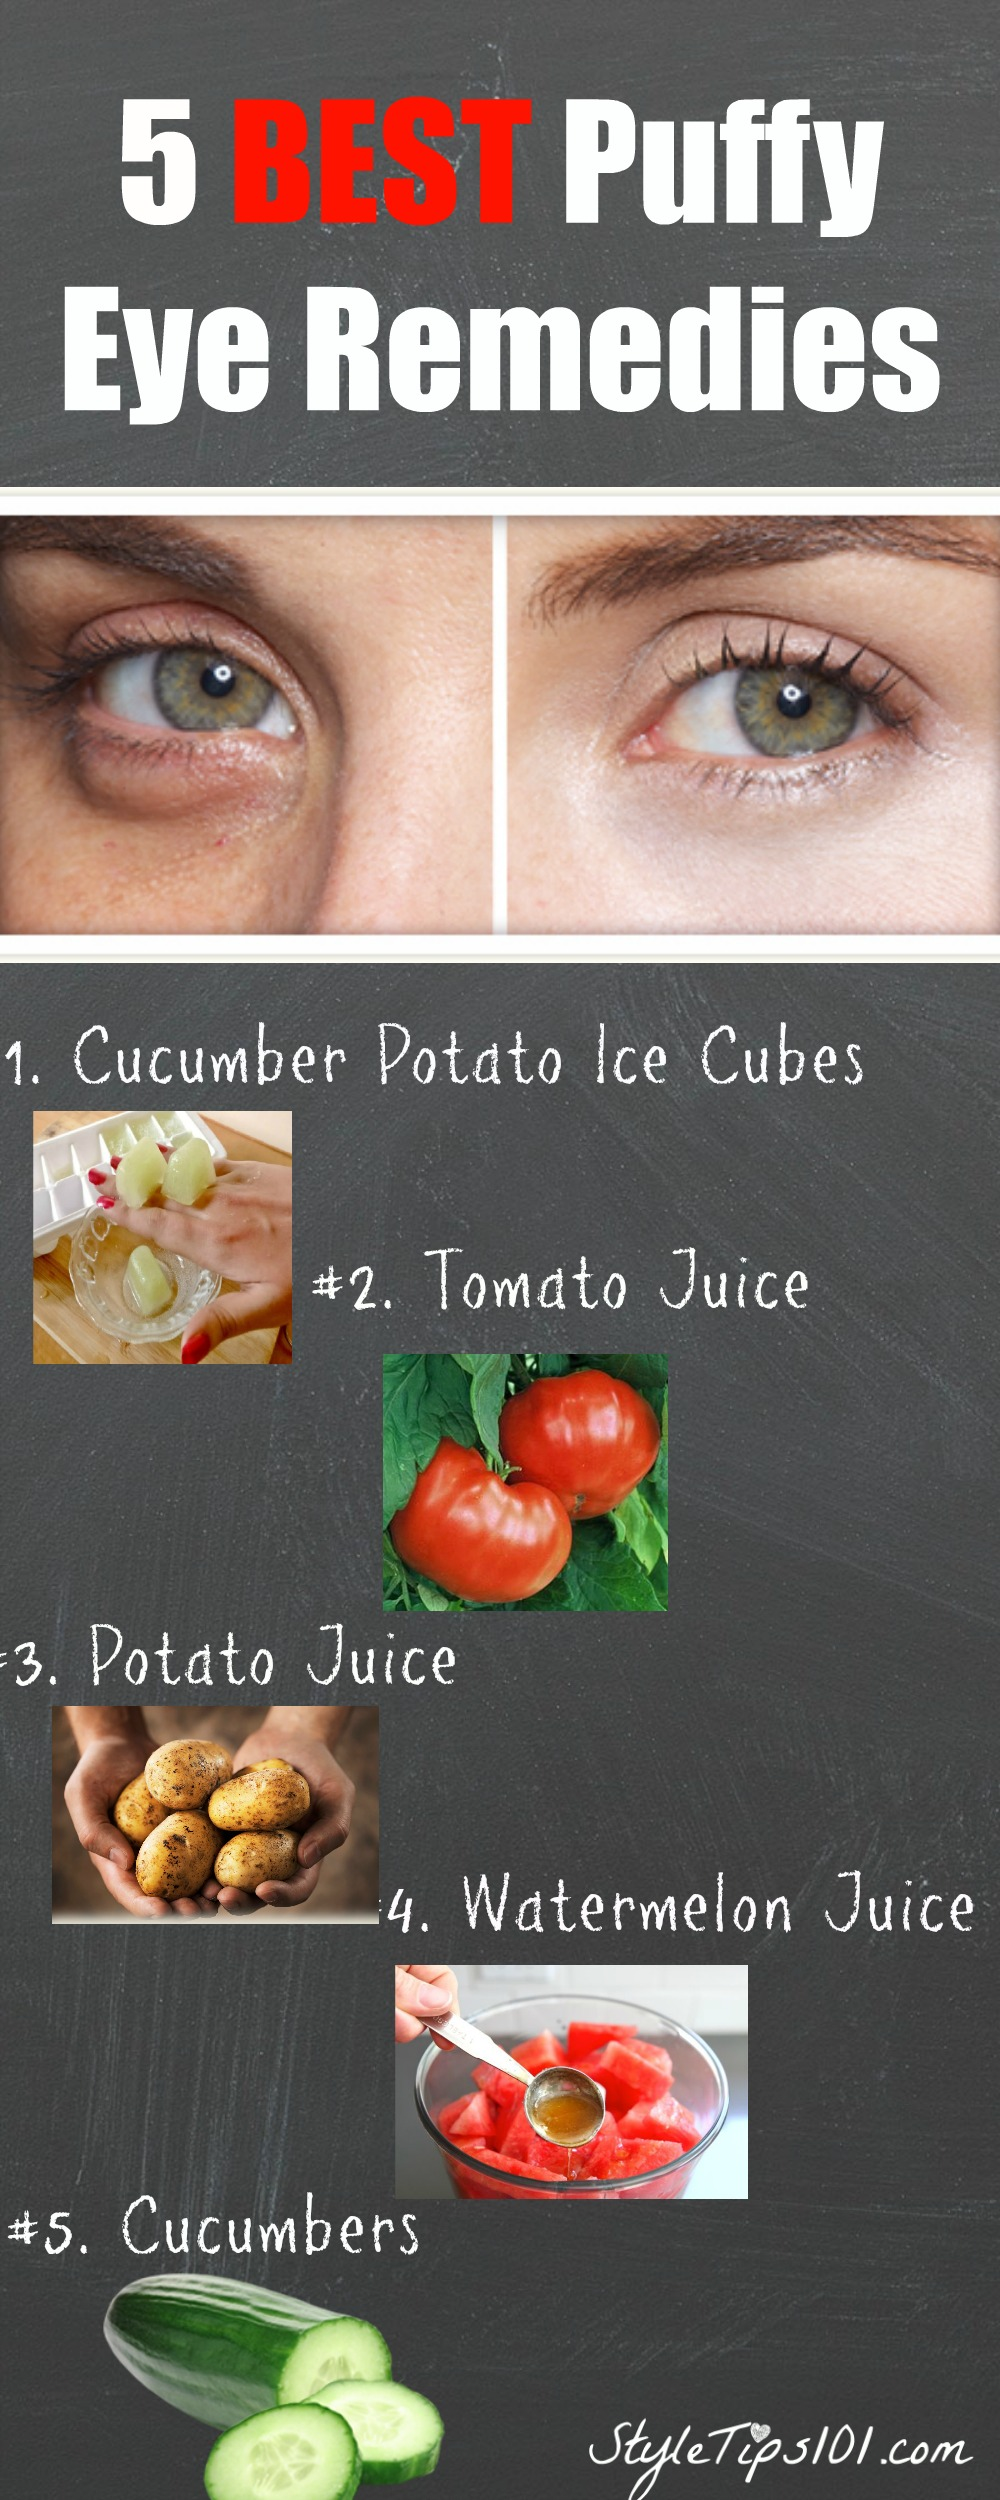 Puff Eye Remedies